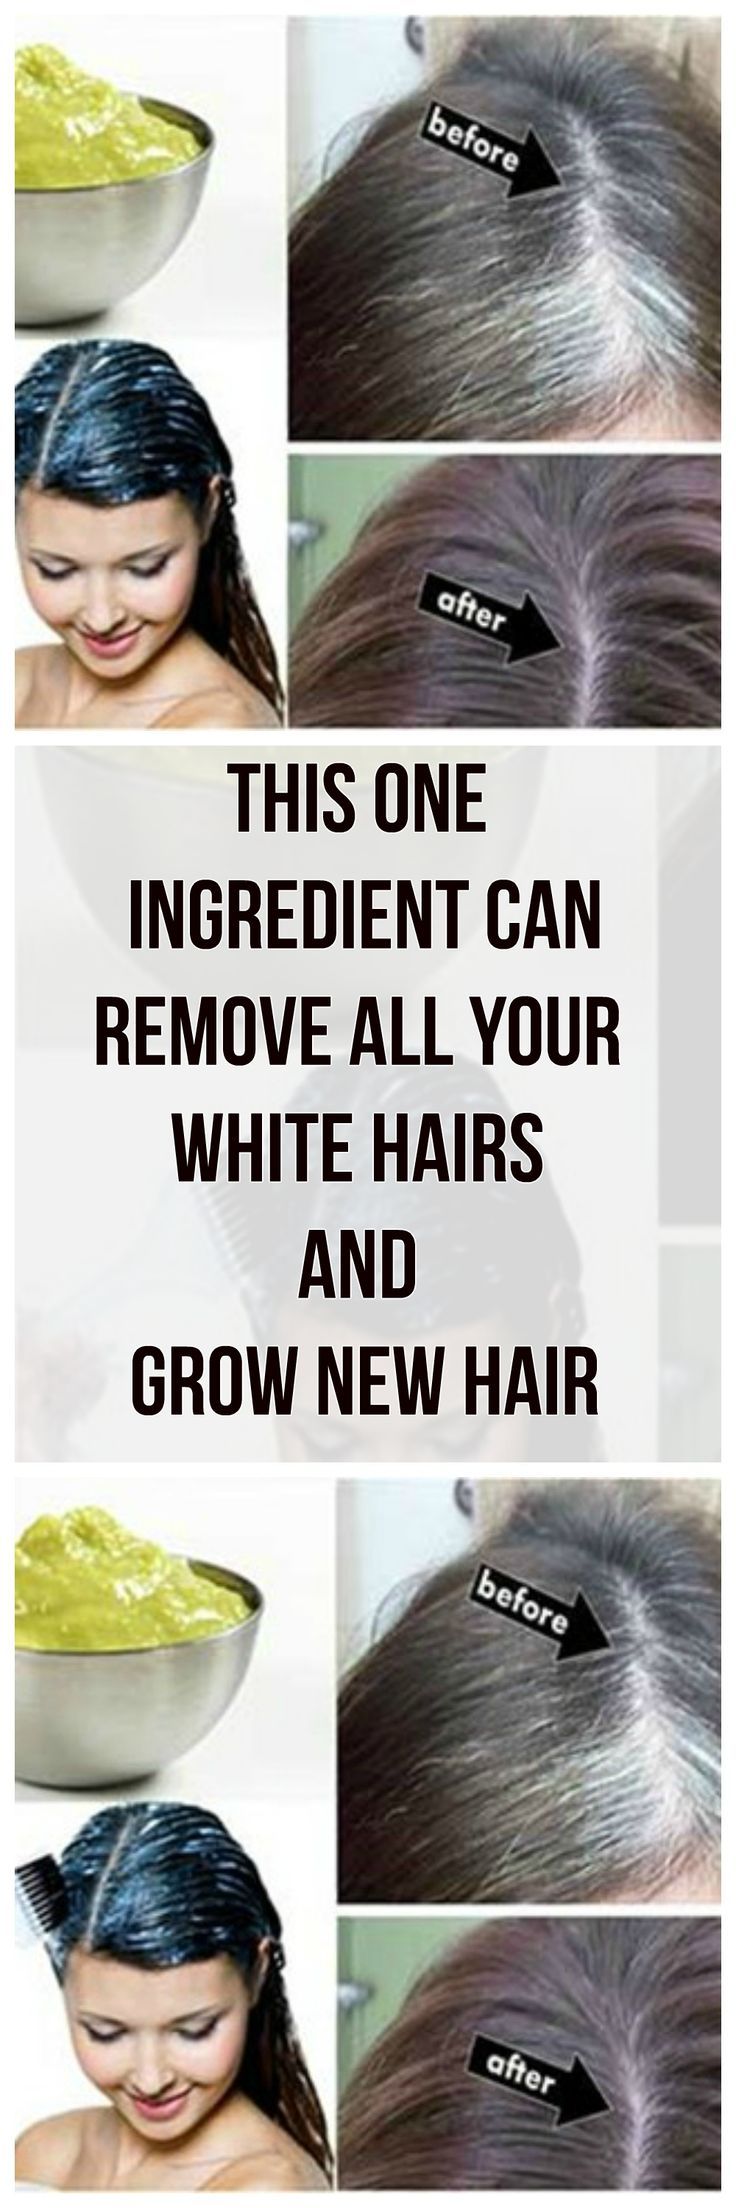 This One Ingredient Can Remove All Your White Hairs And Grow New Hair